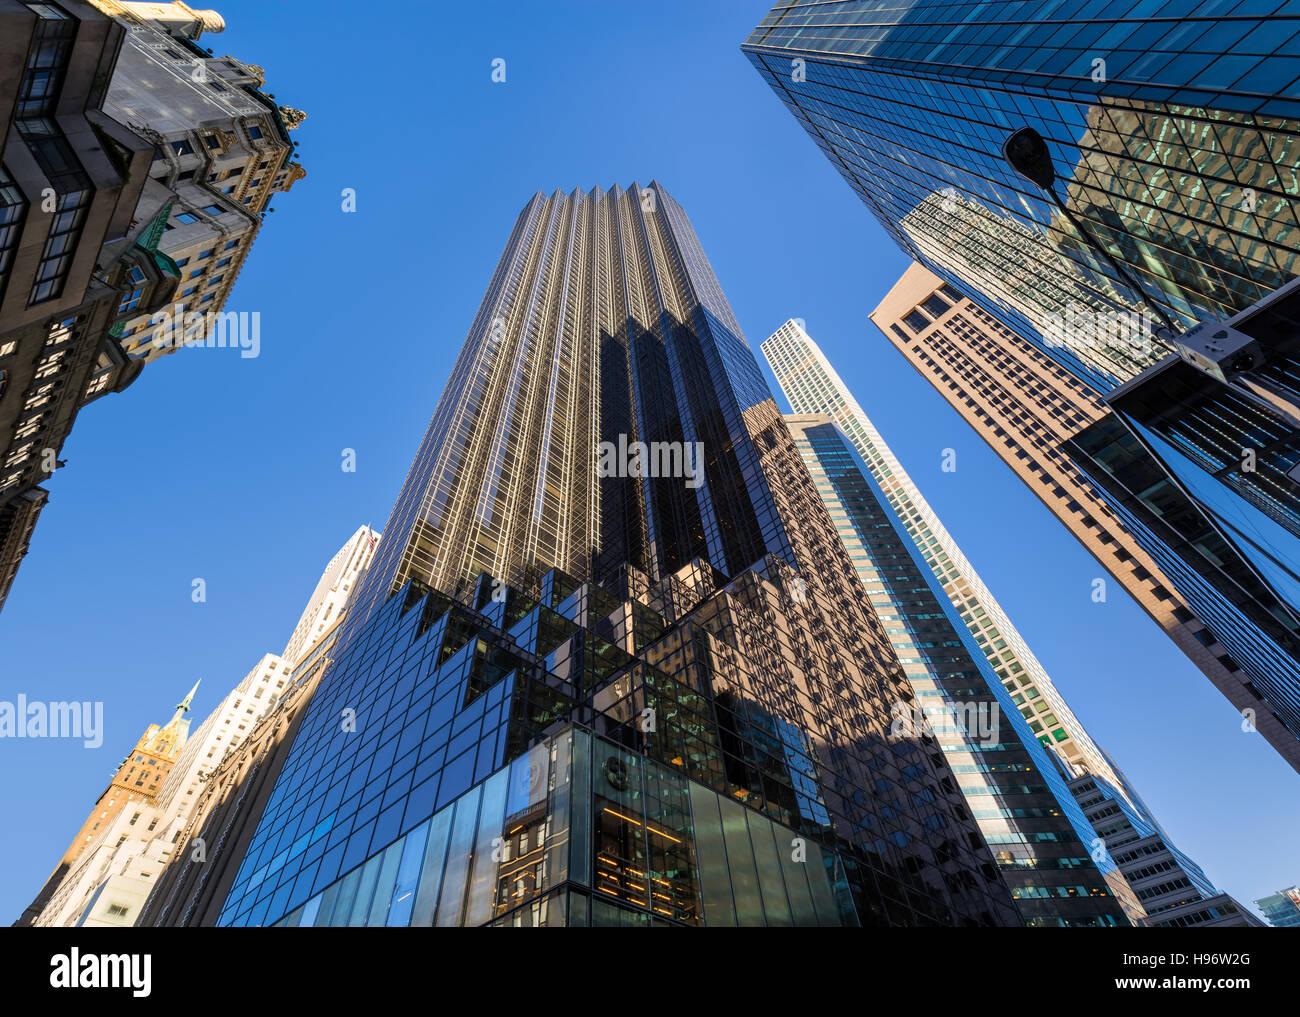 Trump Tower skyscraper on 5th Avenue. Midtown Manhattan, New York City - Stock Image